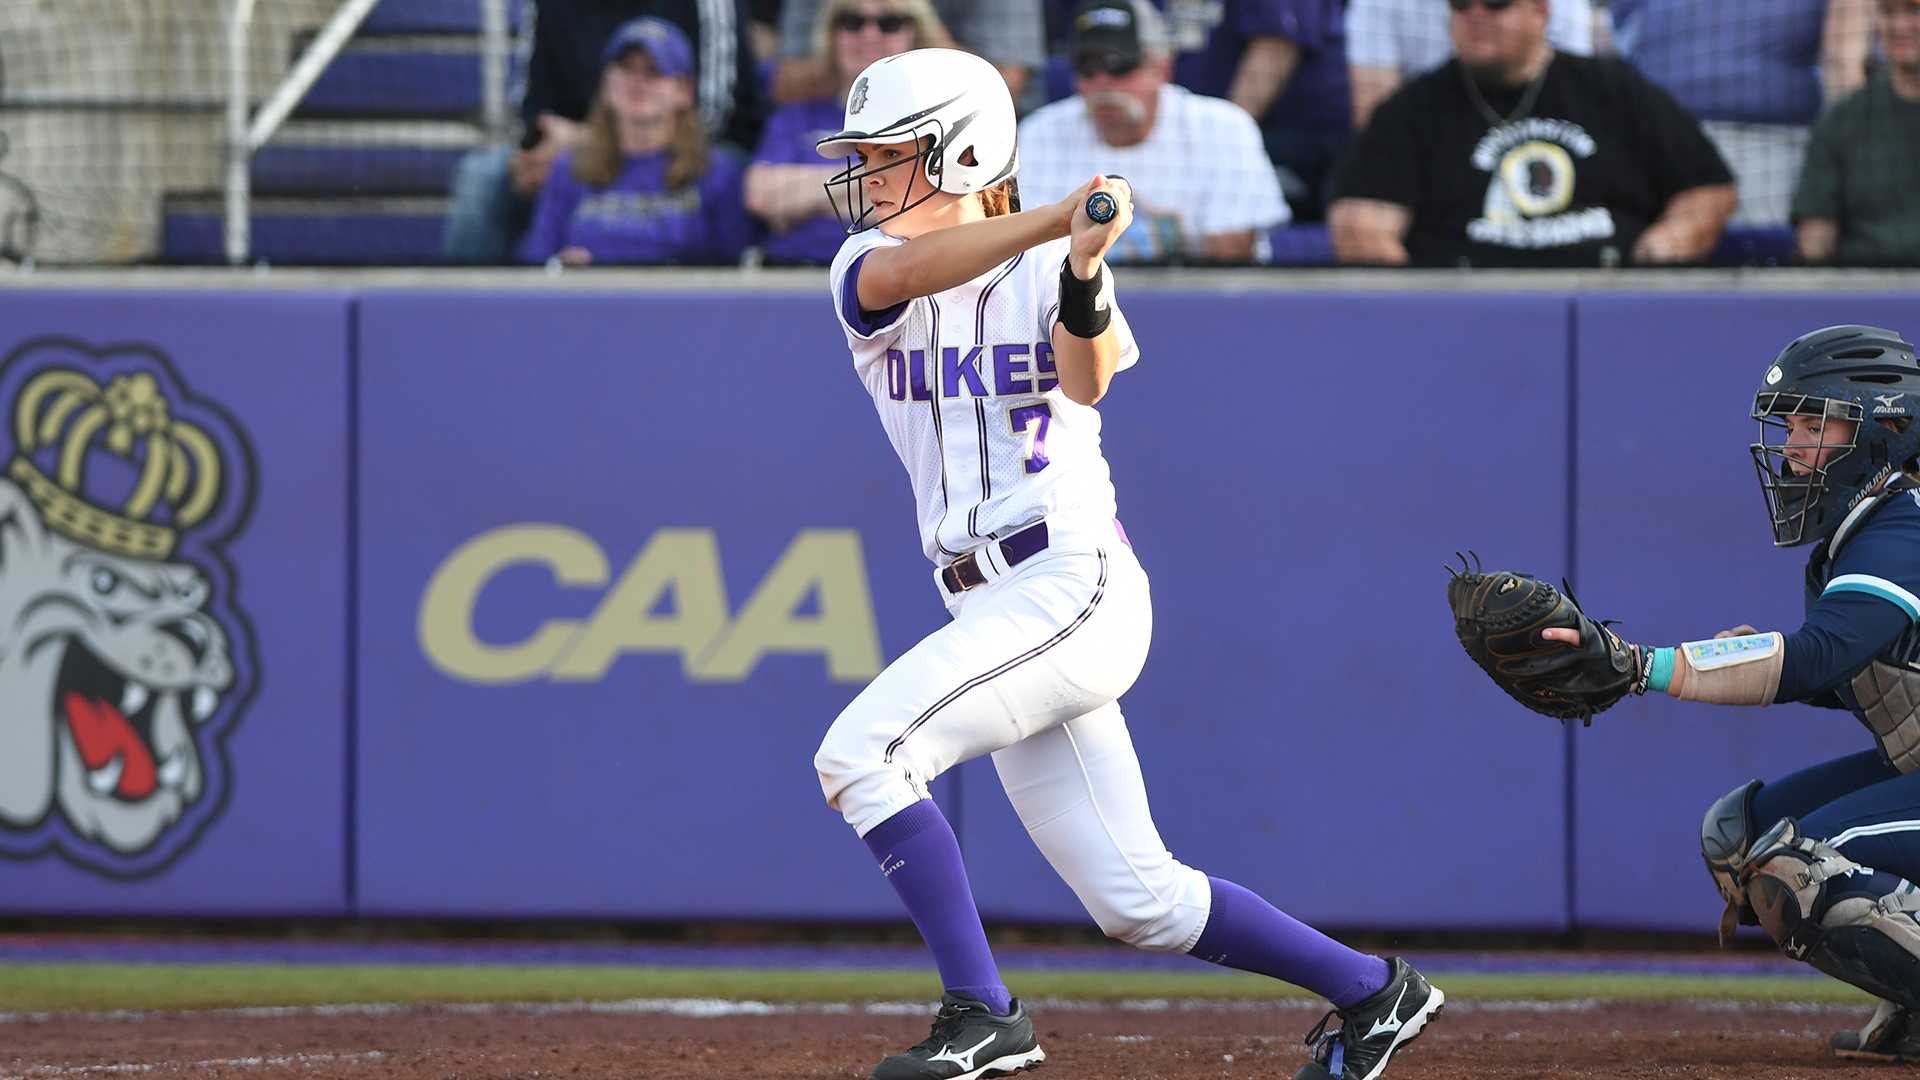 Softball: Dukes Cap Off Perfect Weekend With Wins Over Penn State, Western Carolina)